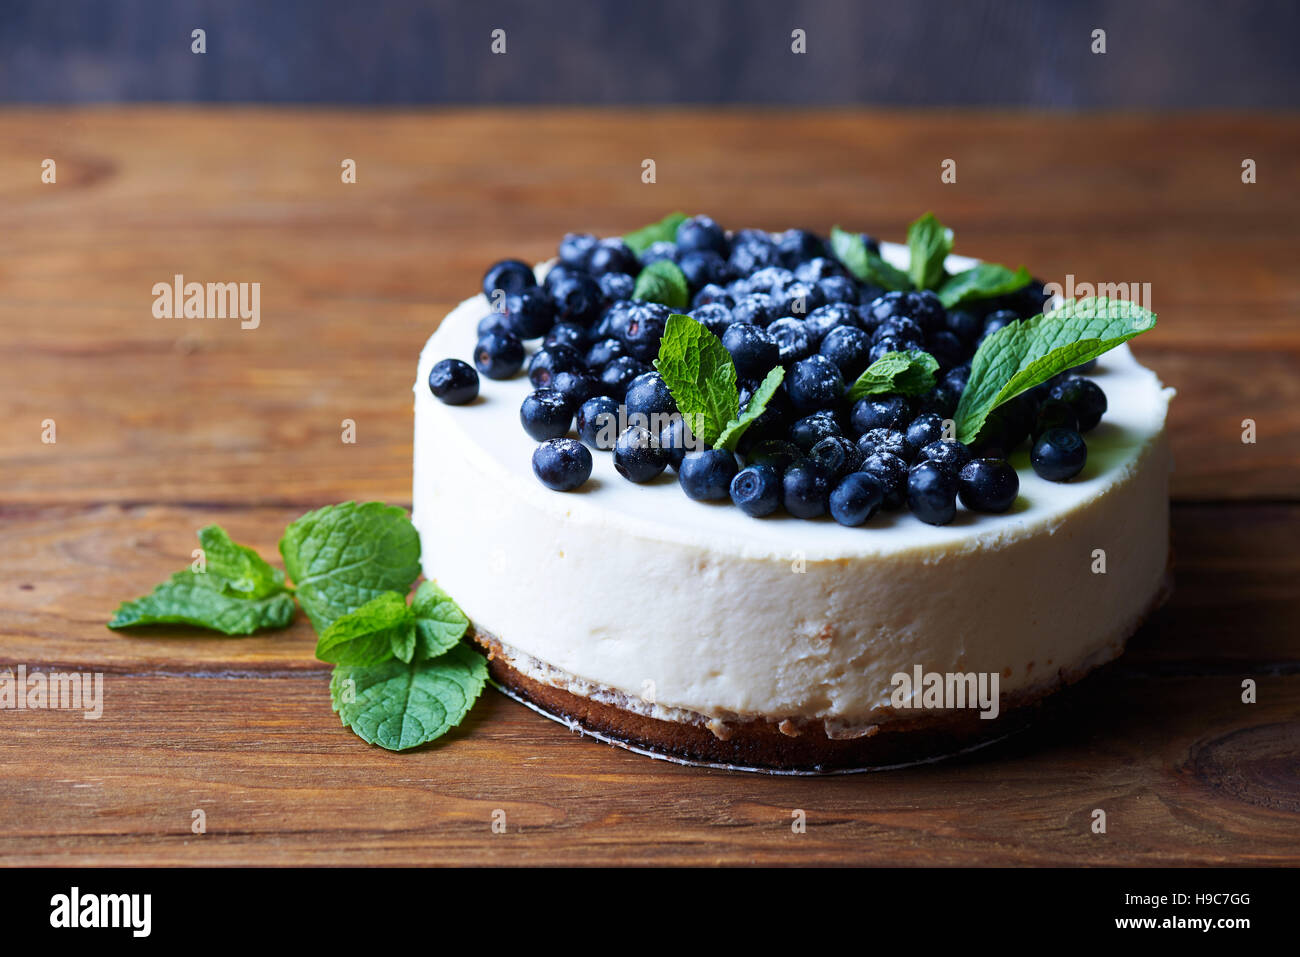 Sweet creamy blueberry cheesecake with fresh blueberries and mint leaves on a wooden background with copy space. - Stock Image